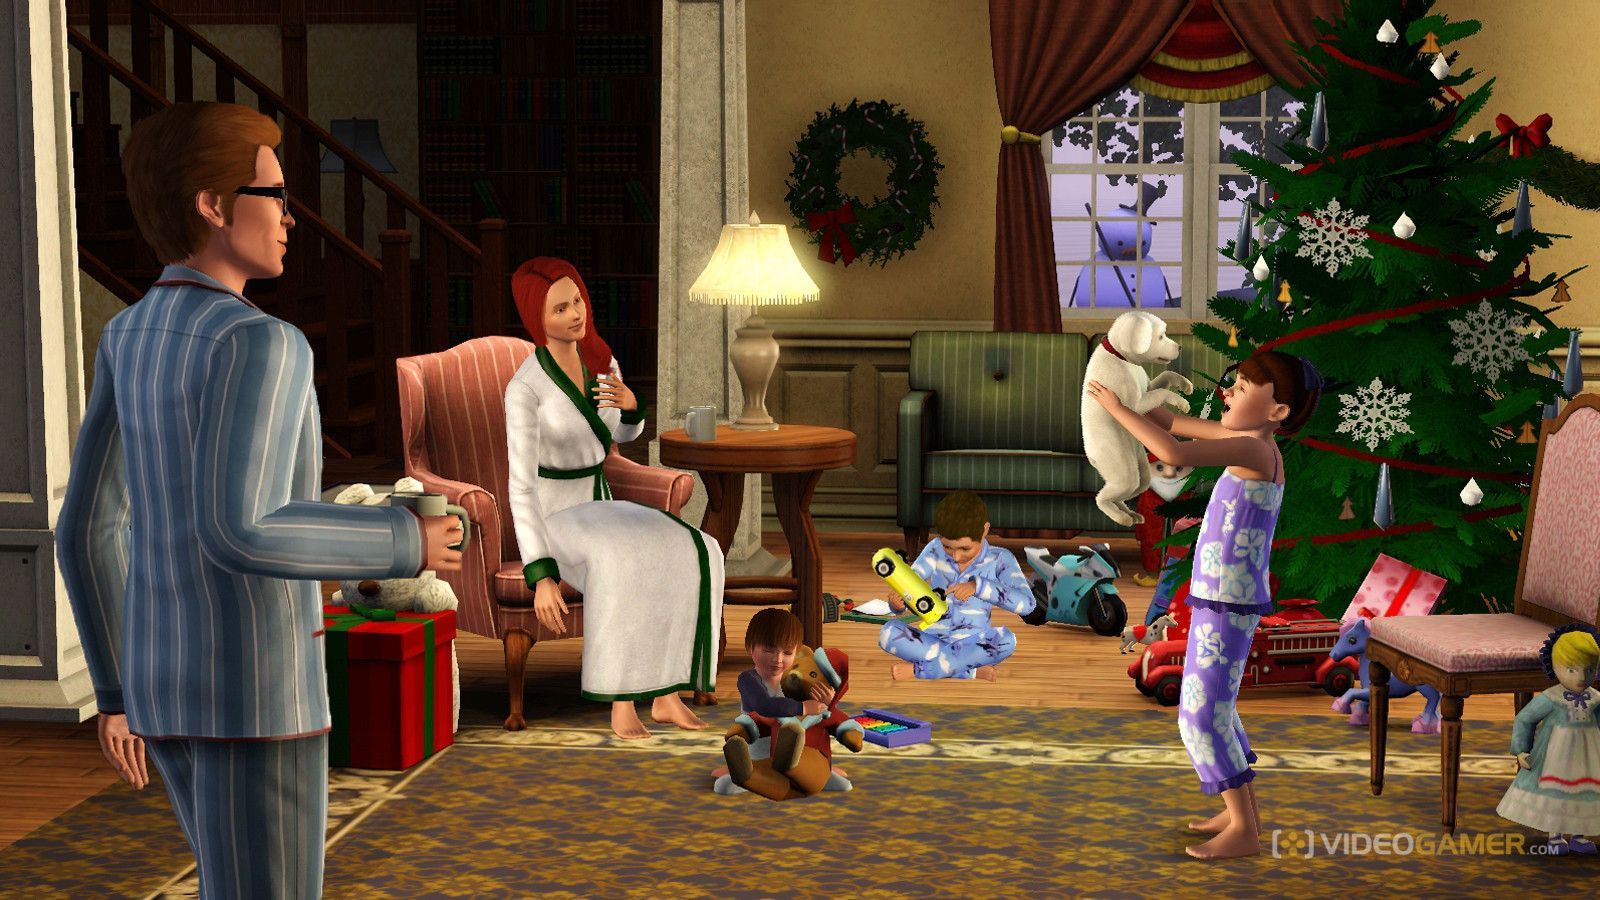 images sims 3 pets | The Sims 3: Pets Screenshot for Xbox 360 ...